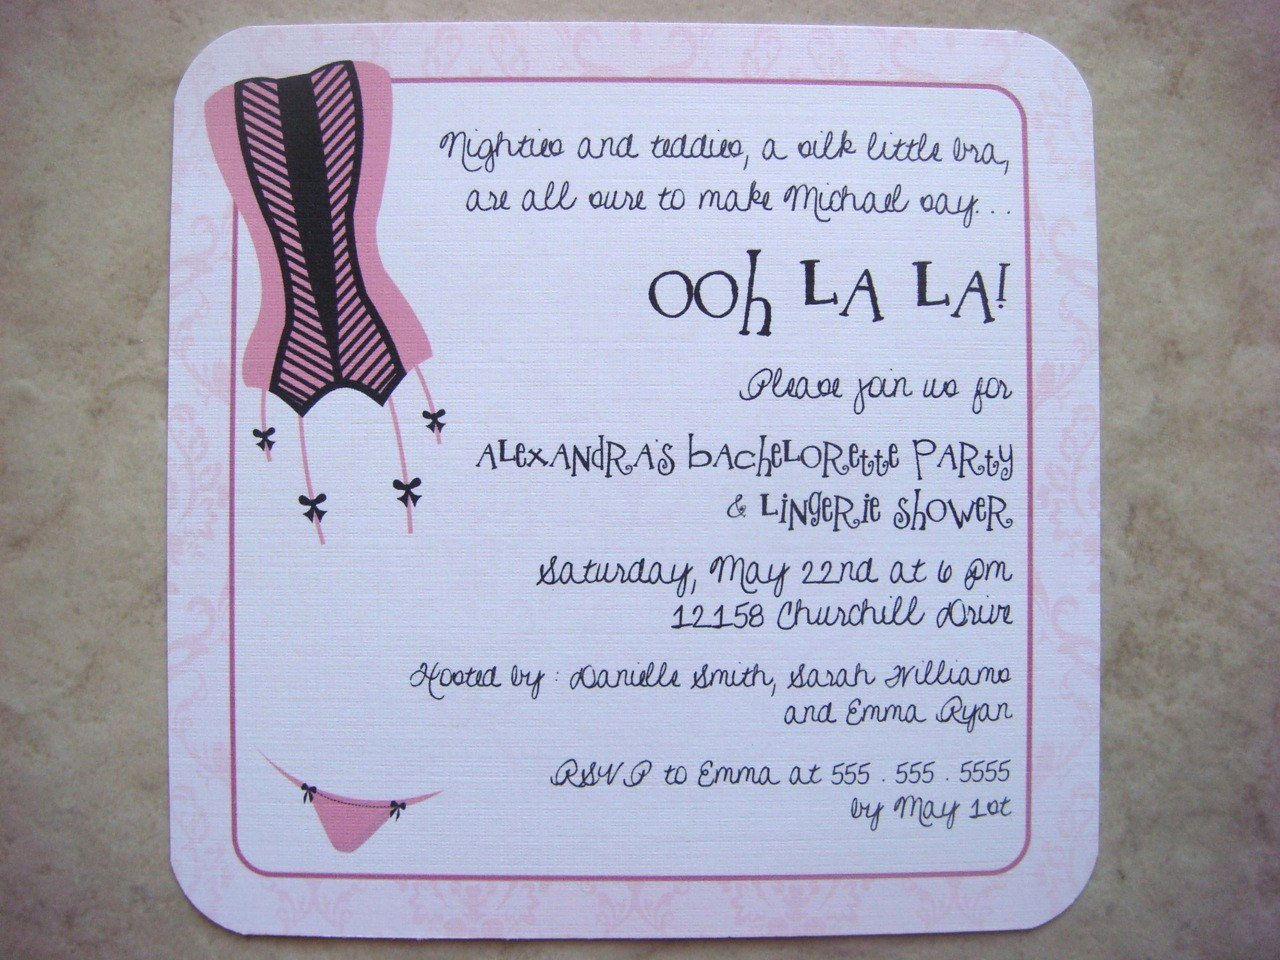 Bachelorette Party Invitation Wording New Items Similar to Ooh La La Bachelorette Party Invitations